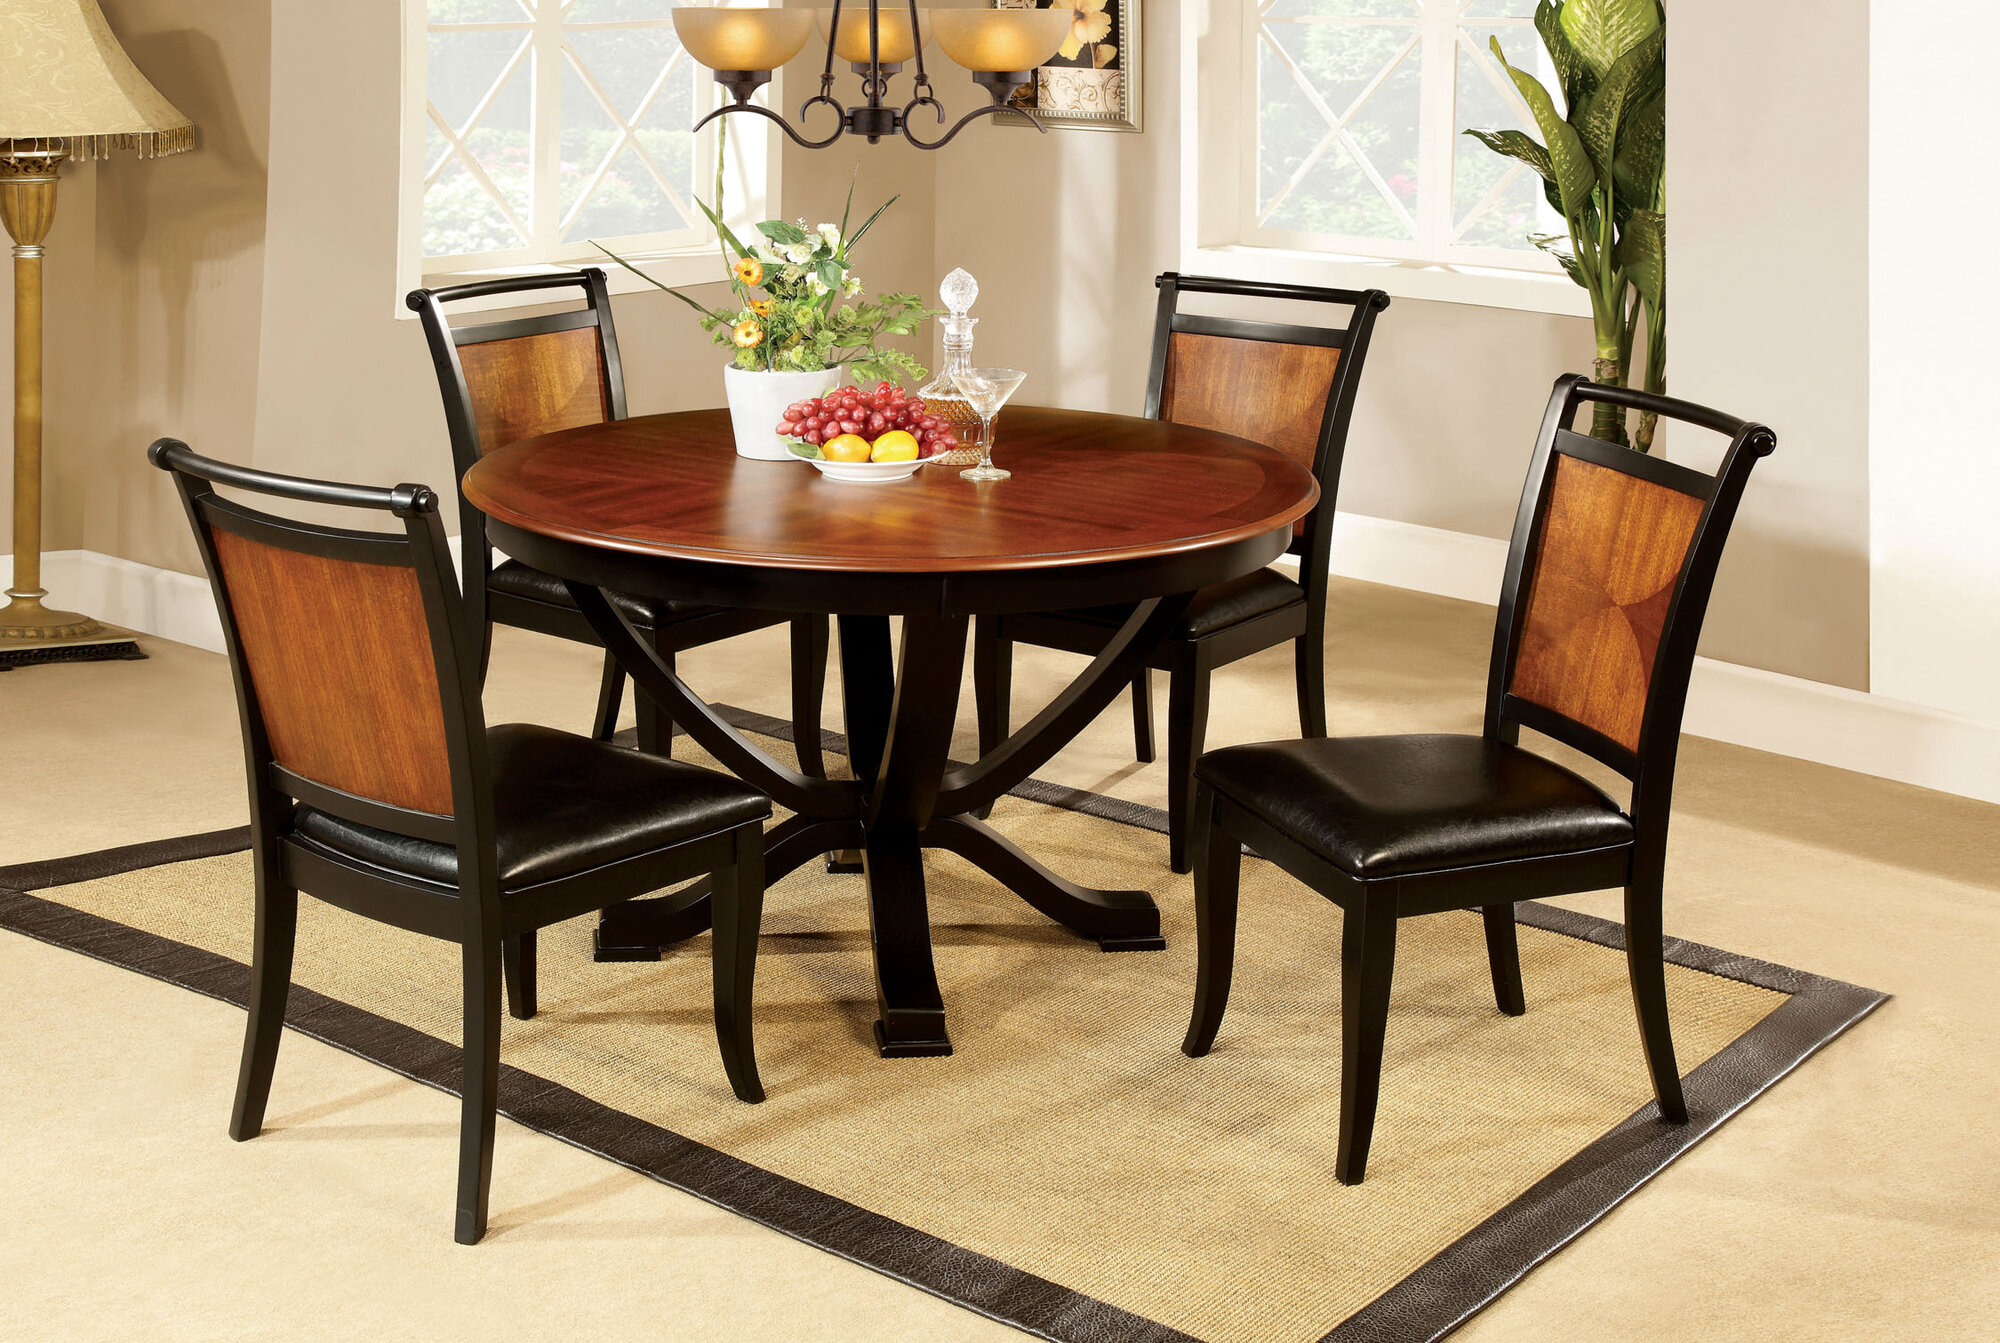 Buy Now Pay Later Hokku Designs Exquisite 5 Piece Dining Set